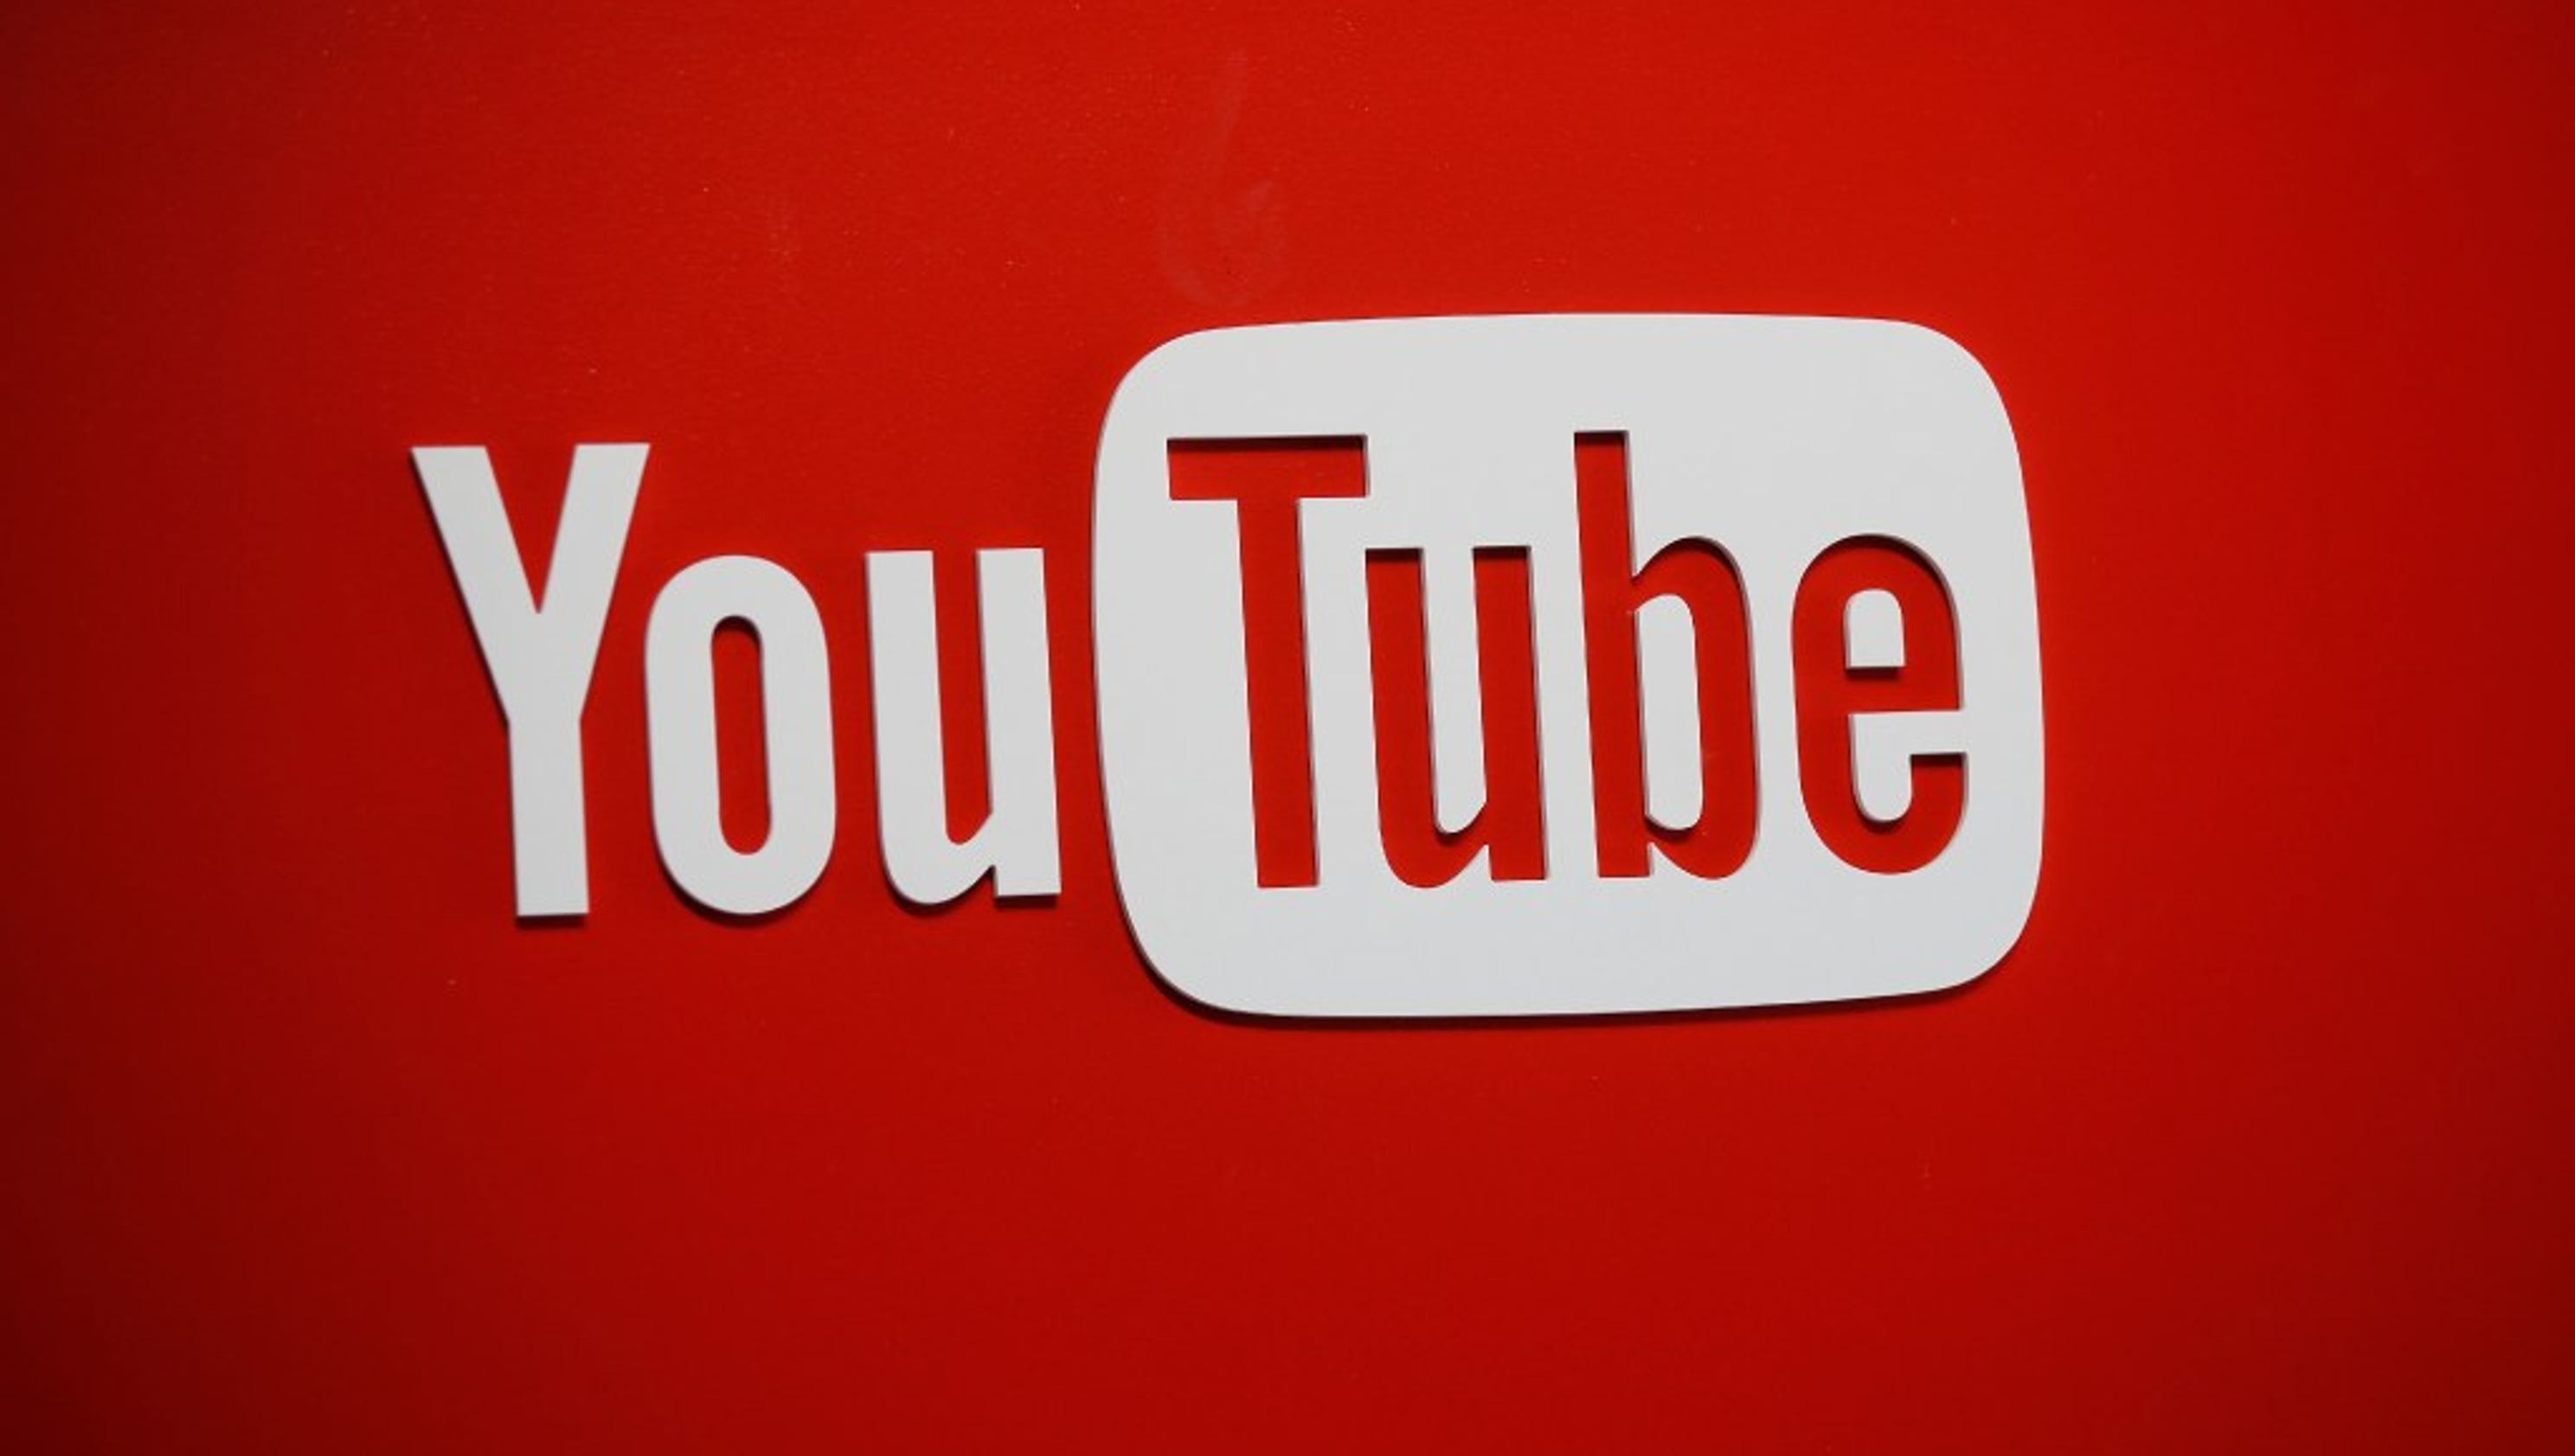 Youtube To Ban Videos About Gun Sales And Modifications